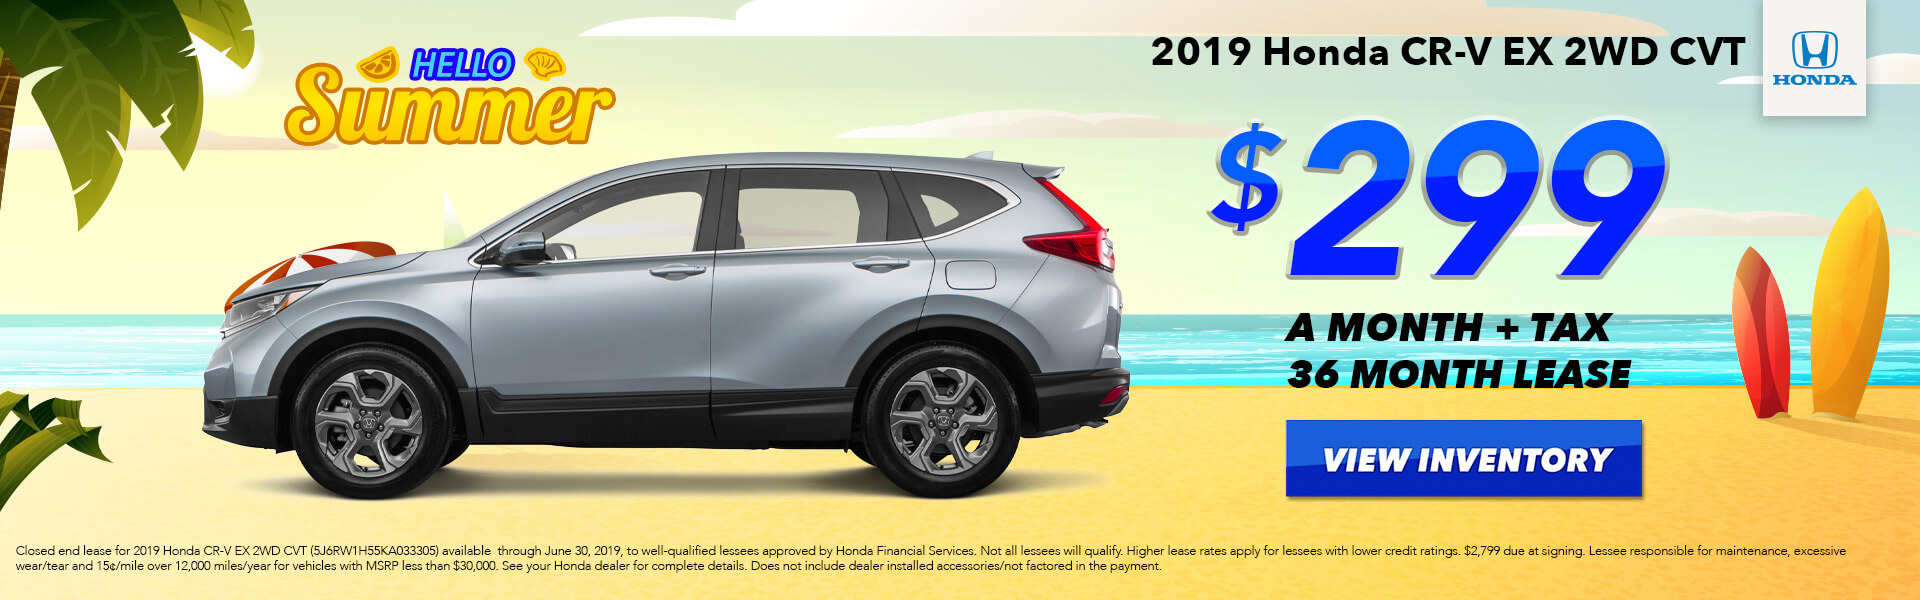 2019 Honda CR-V EX Lease for $299